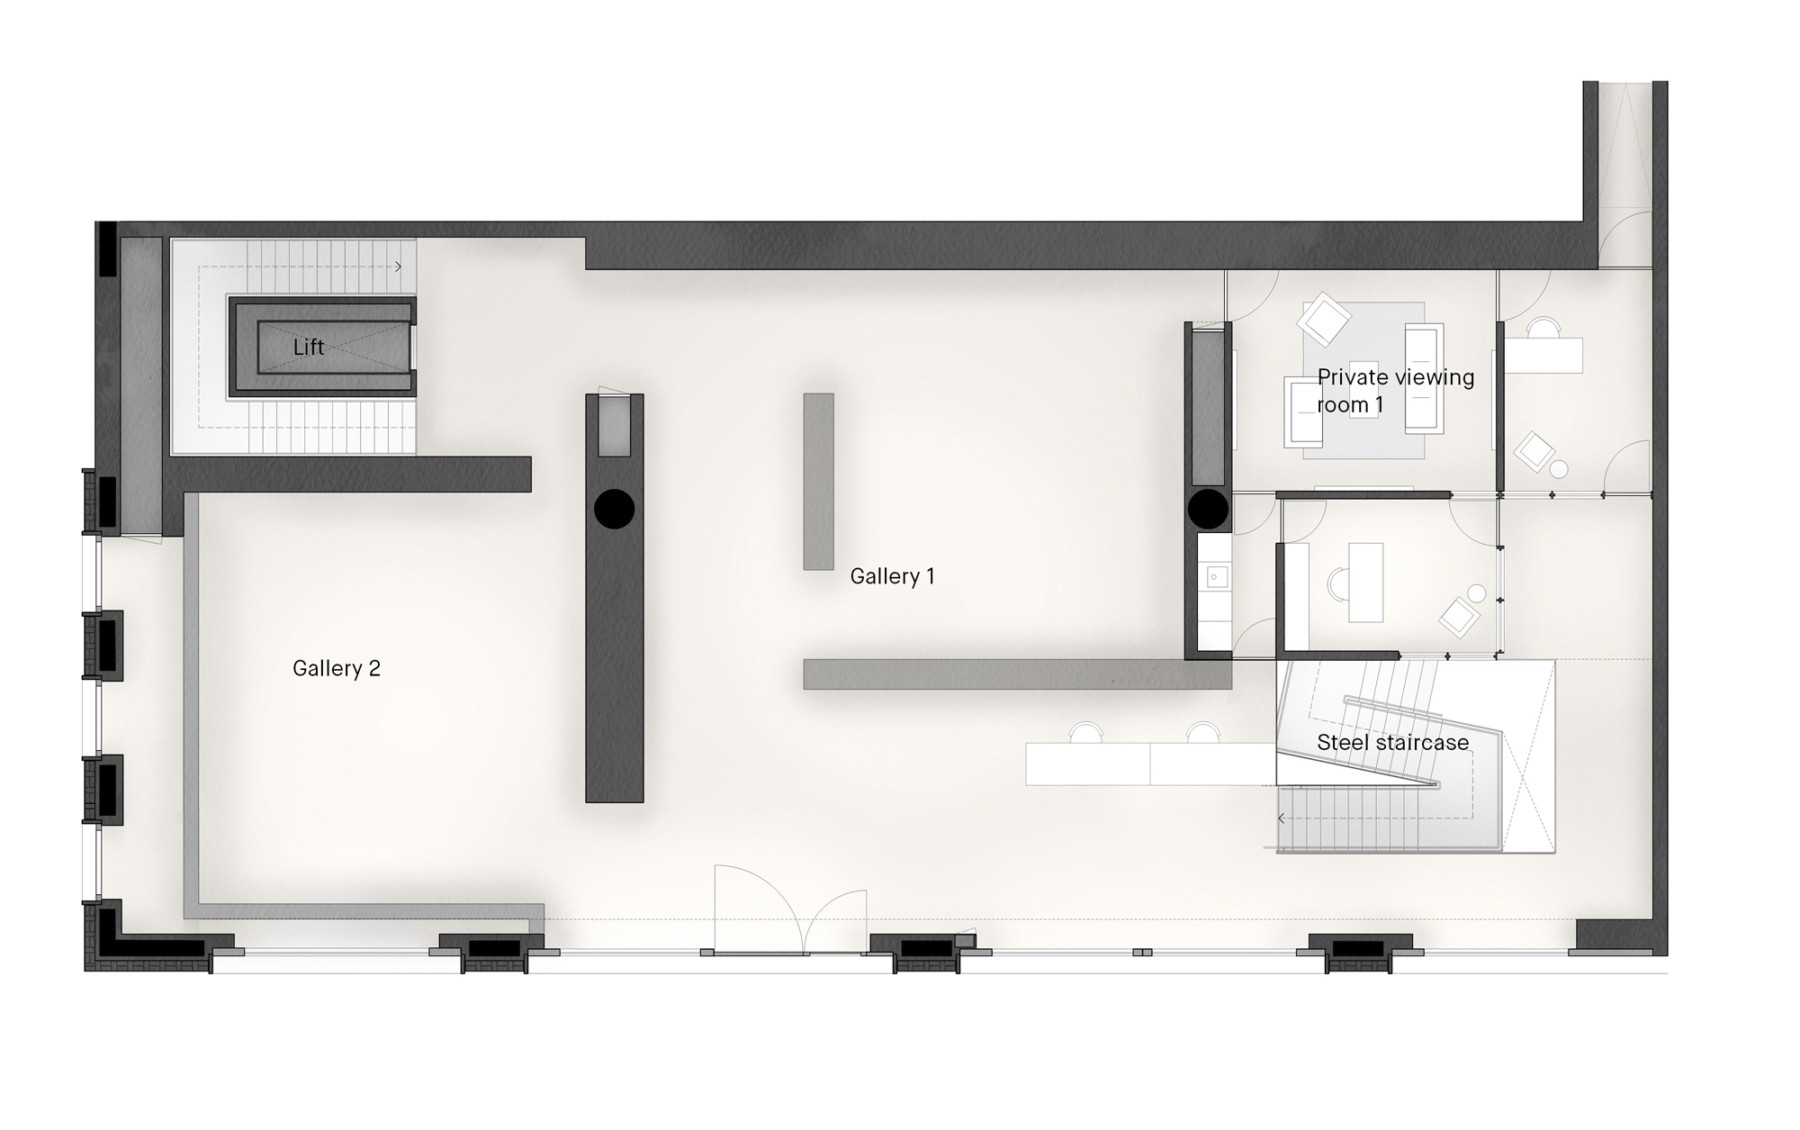 Pace-gallery-hanover-square-jamie-fobert-architects-ground-plan-4